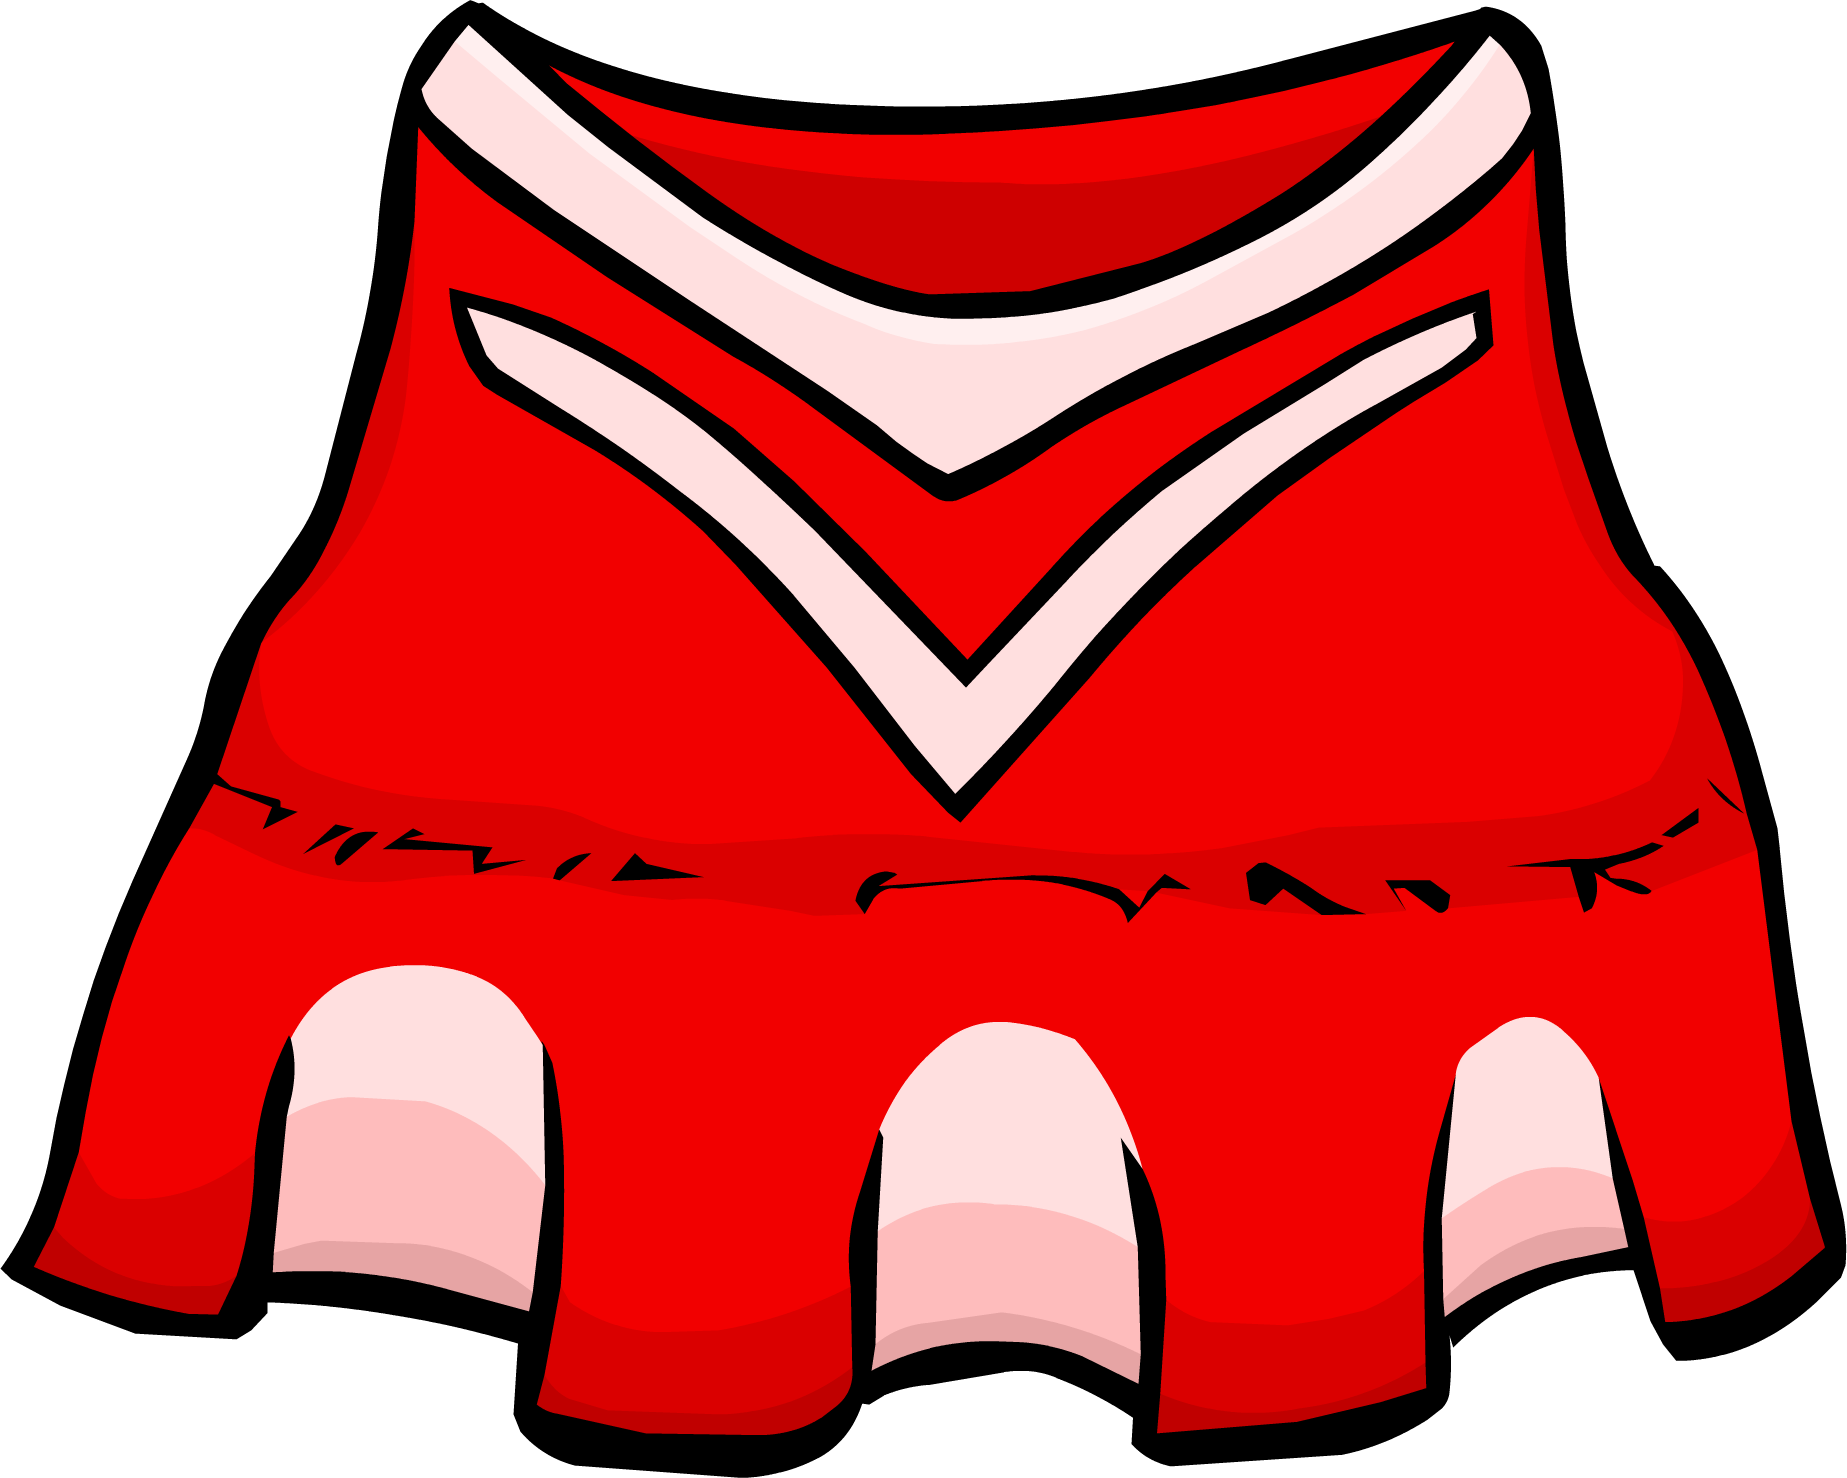 Cheer clipart clothes. Red cheerleader outfit club